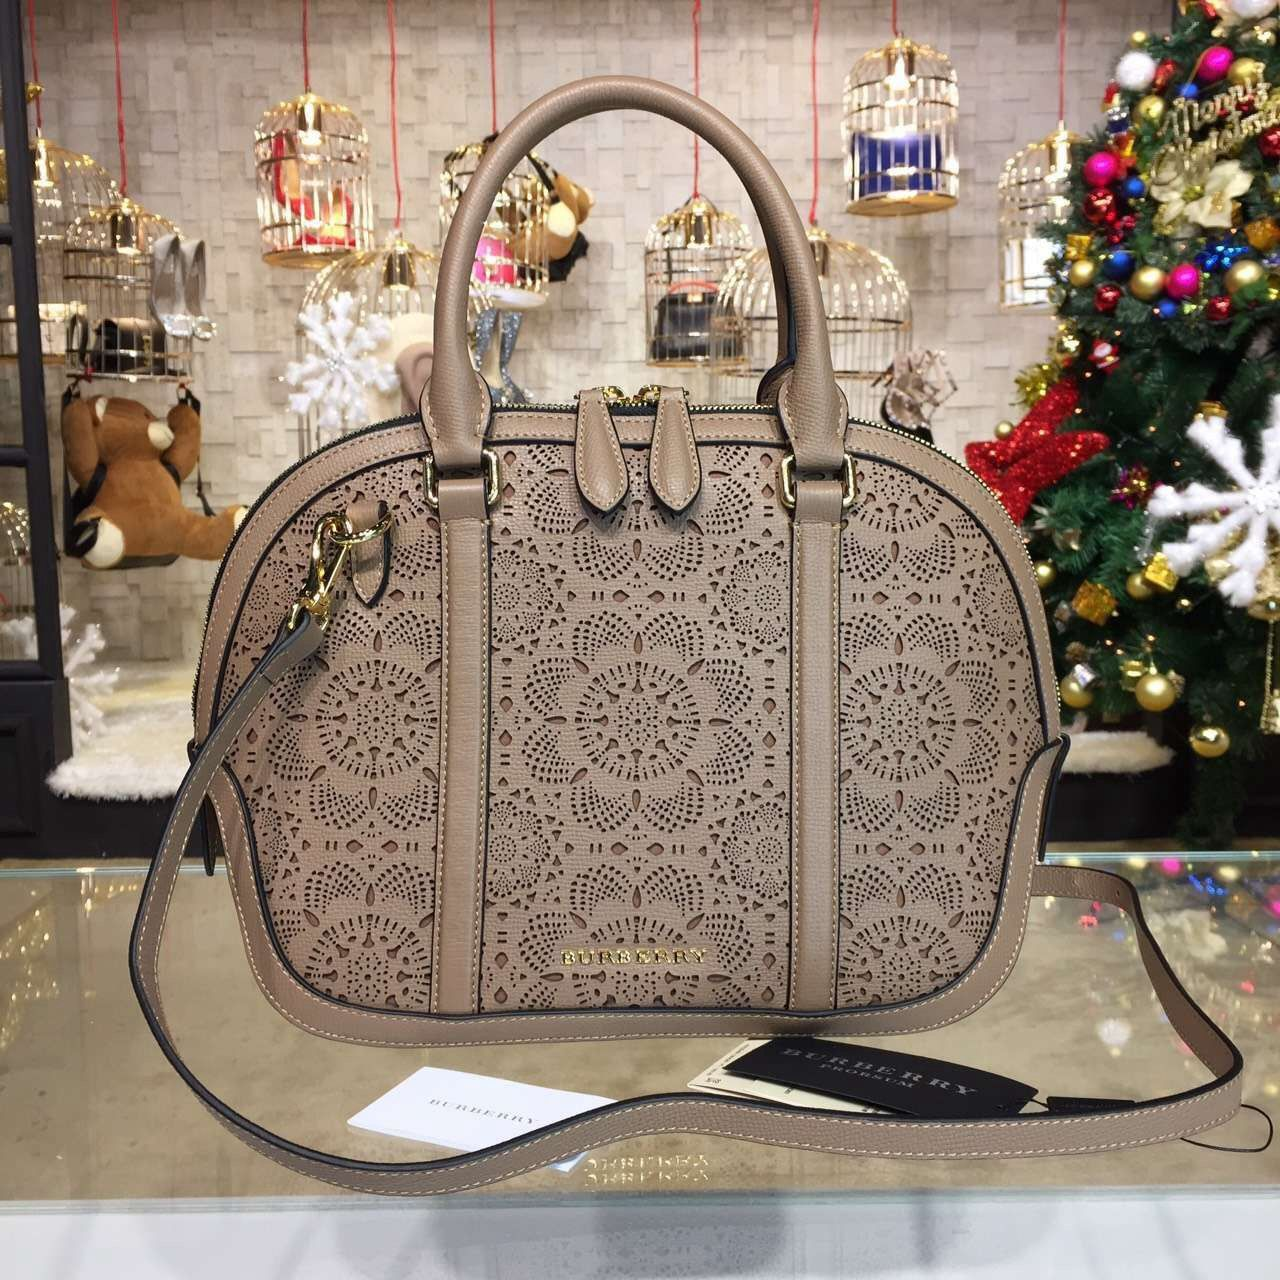 Burberry Small Orchard Bowling Bag In Lace Leather Brown S S 2016 ... f9b54a50e5e84